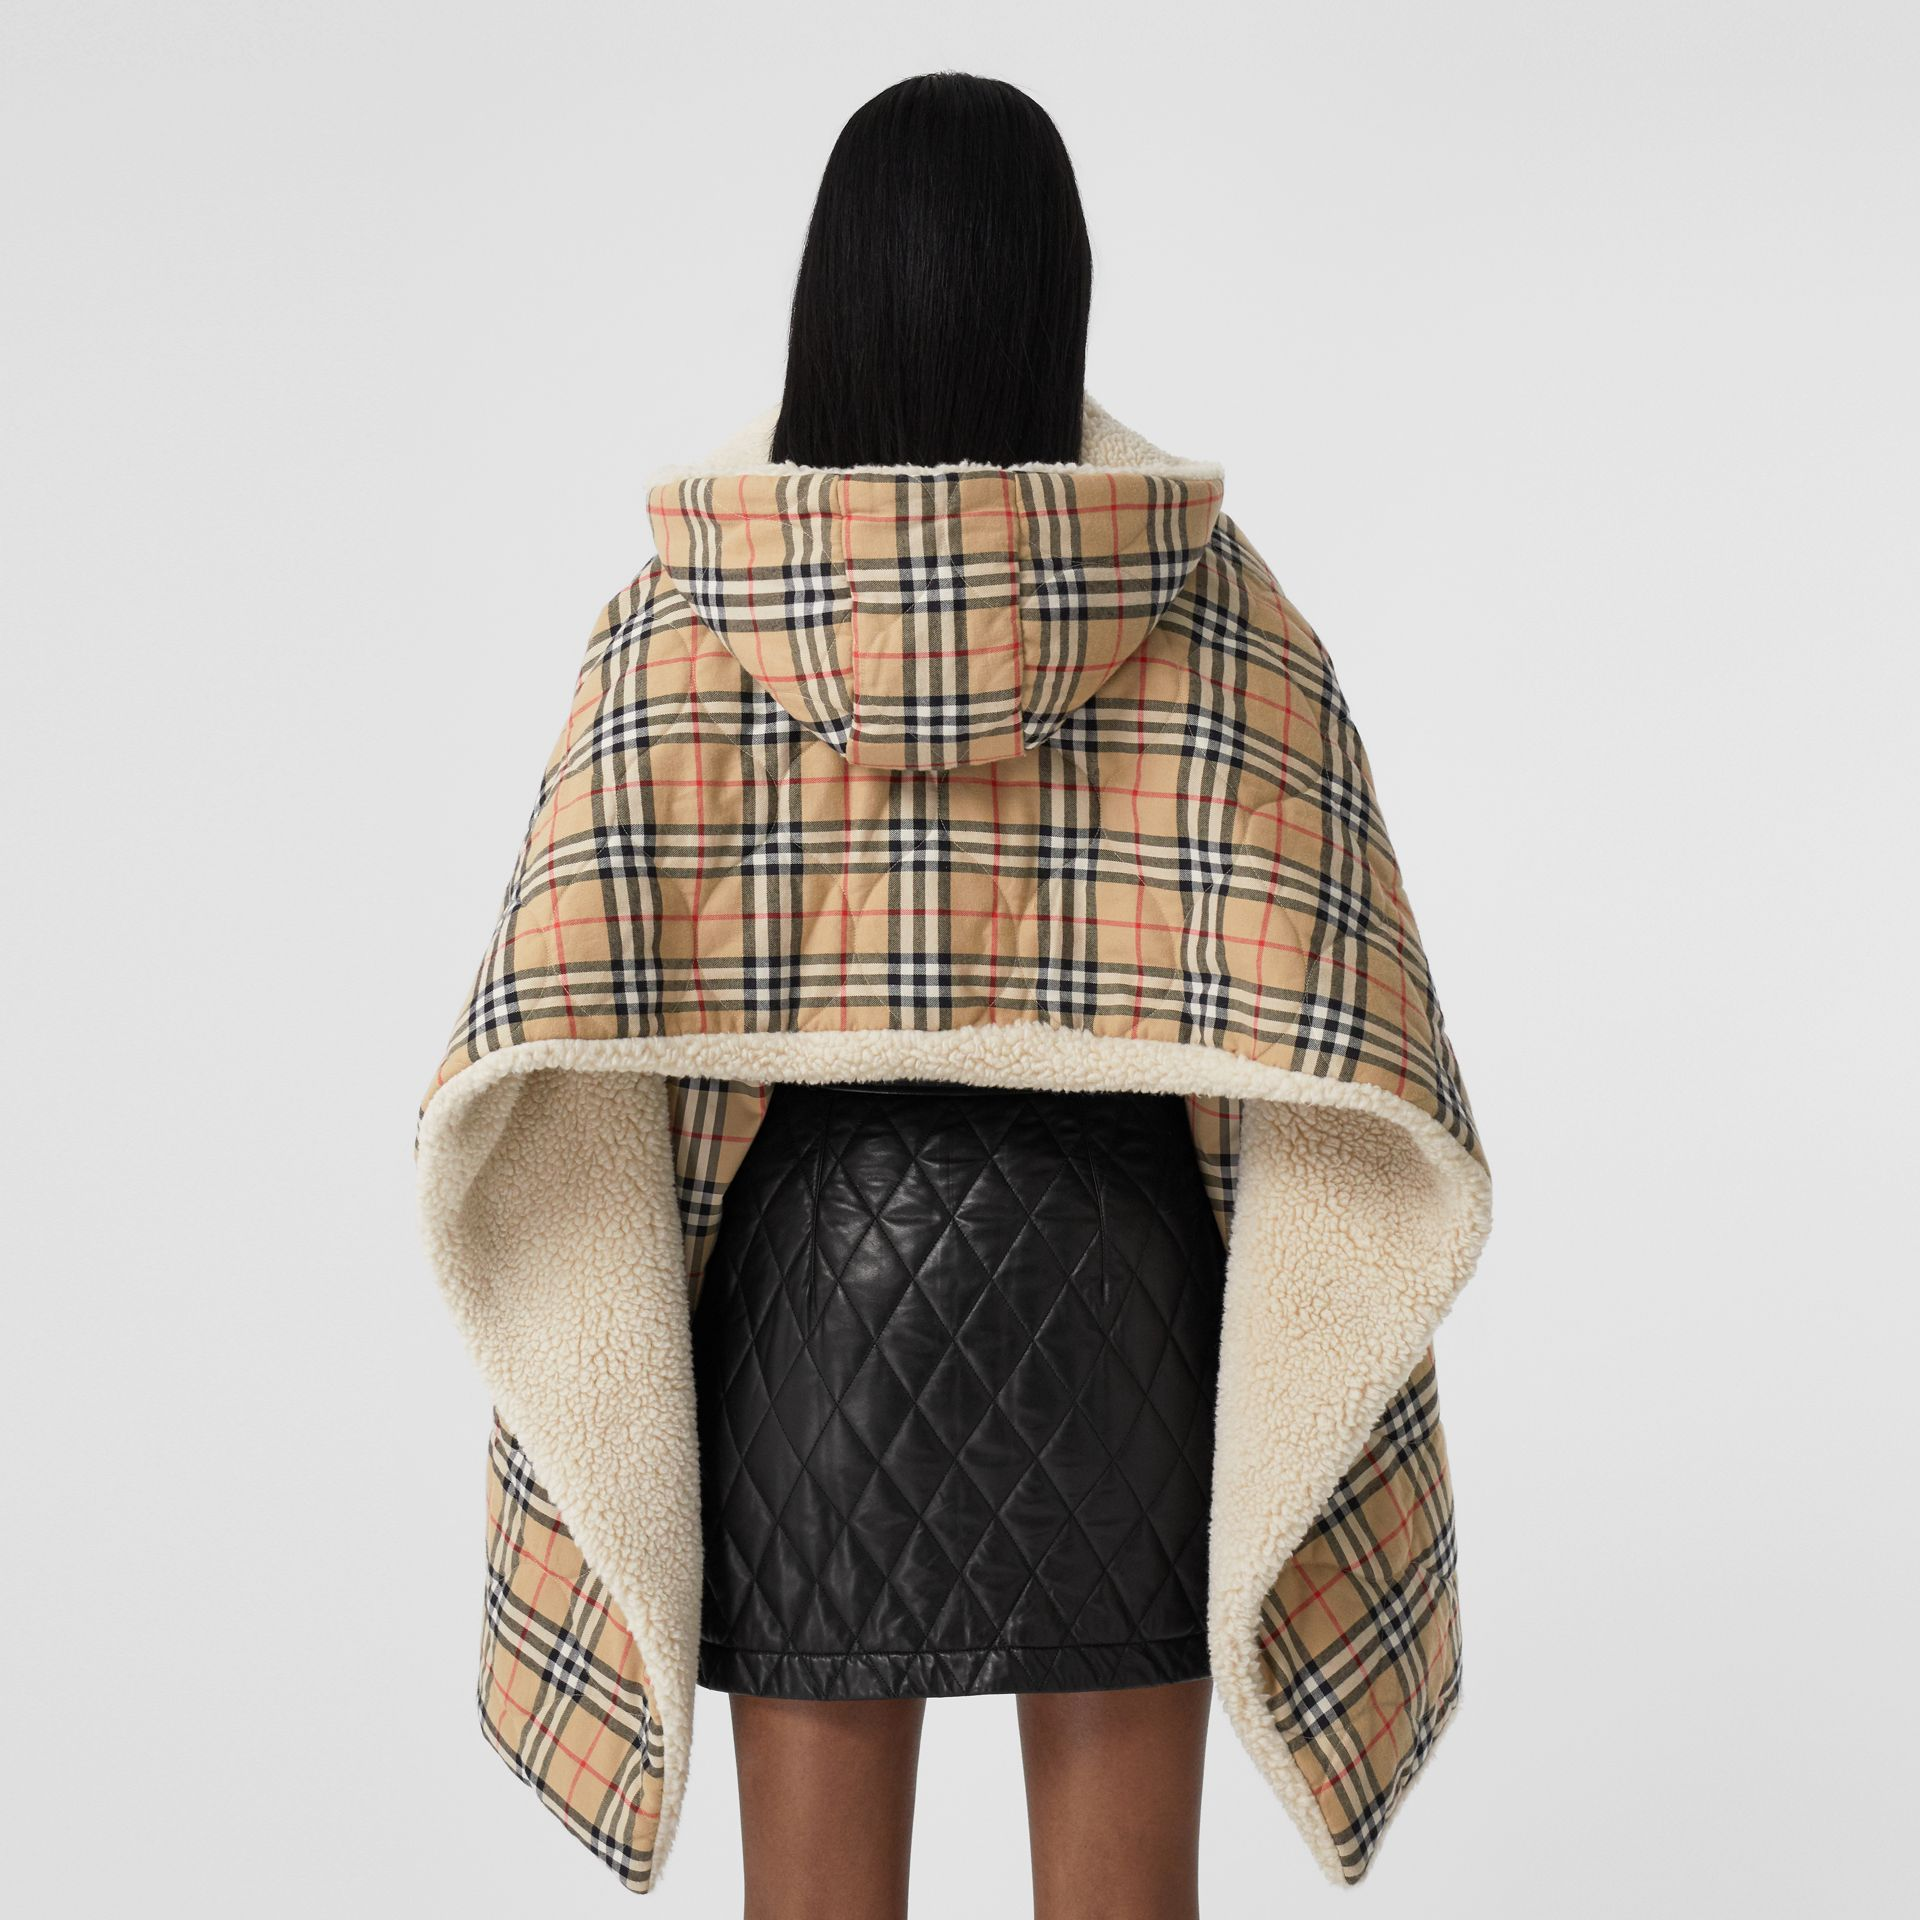 Fleece-lined Vintage Check Cotton Hooded Cape in Camel - Women | Burberry Canada - gallery image 2